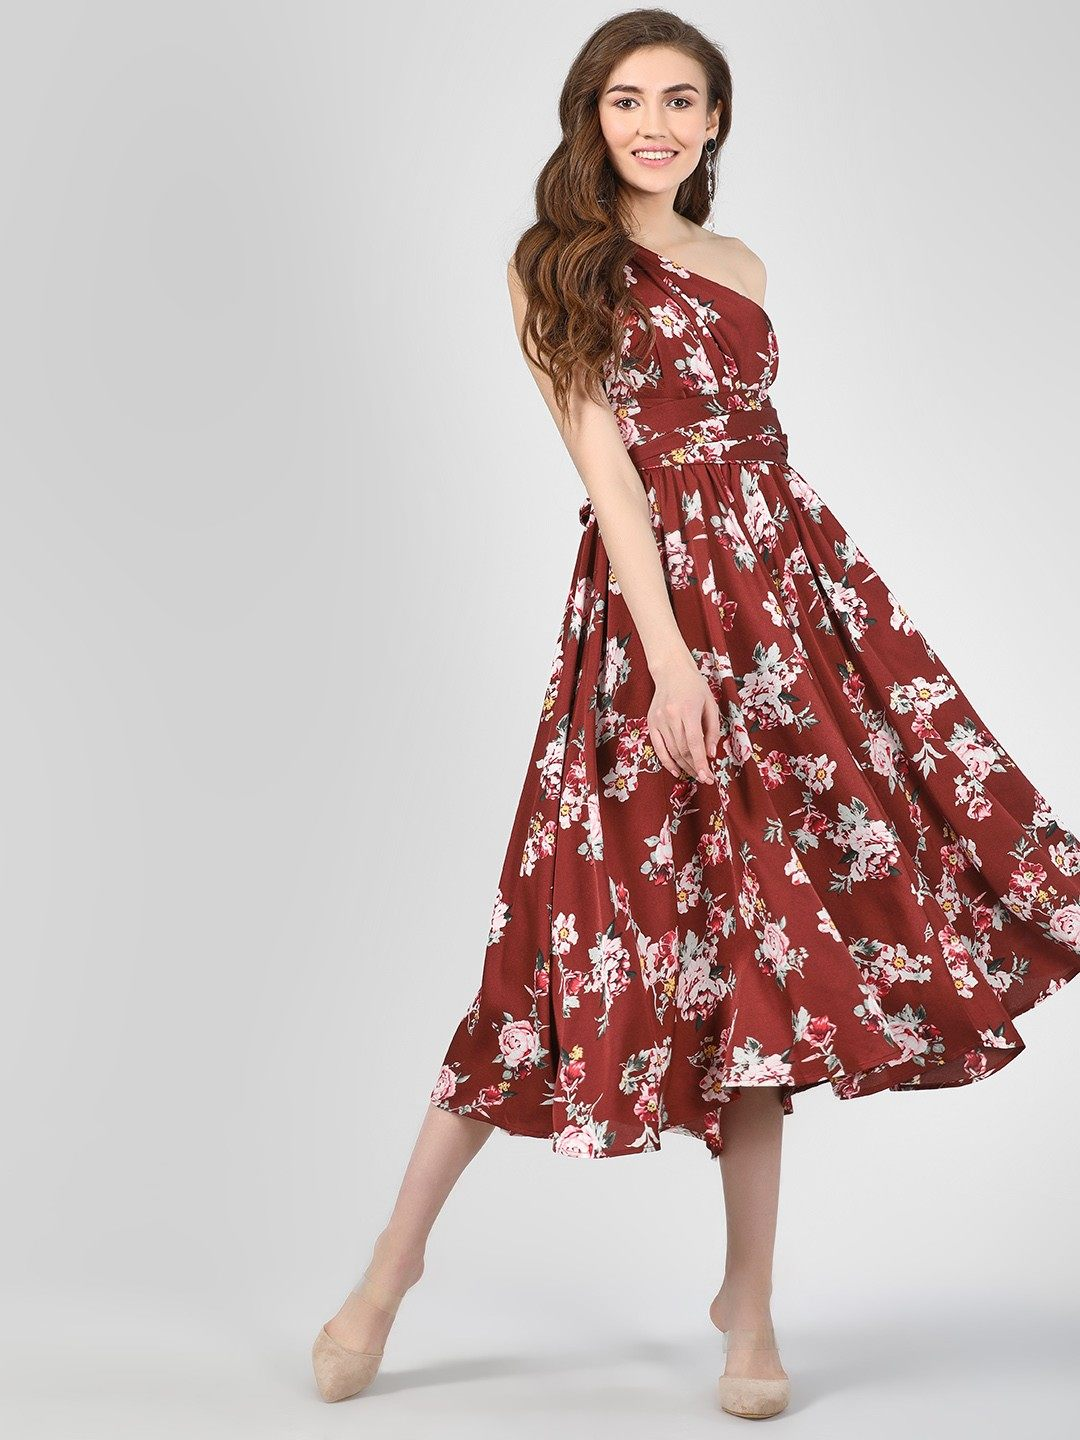 7-Dresses-For-Pear-Shaped-Body